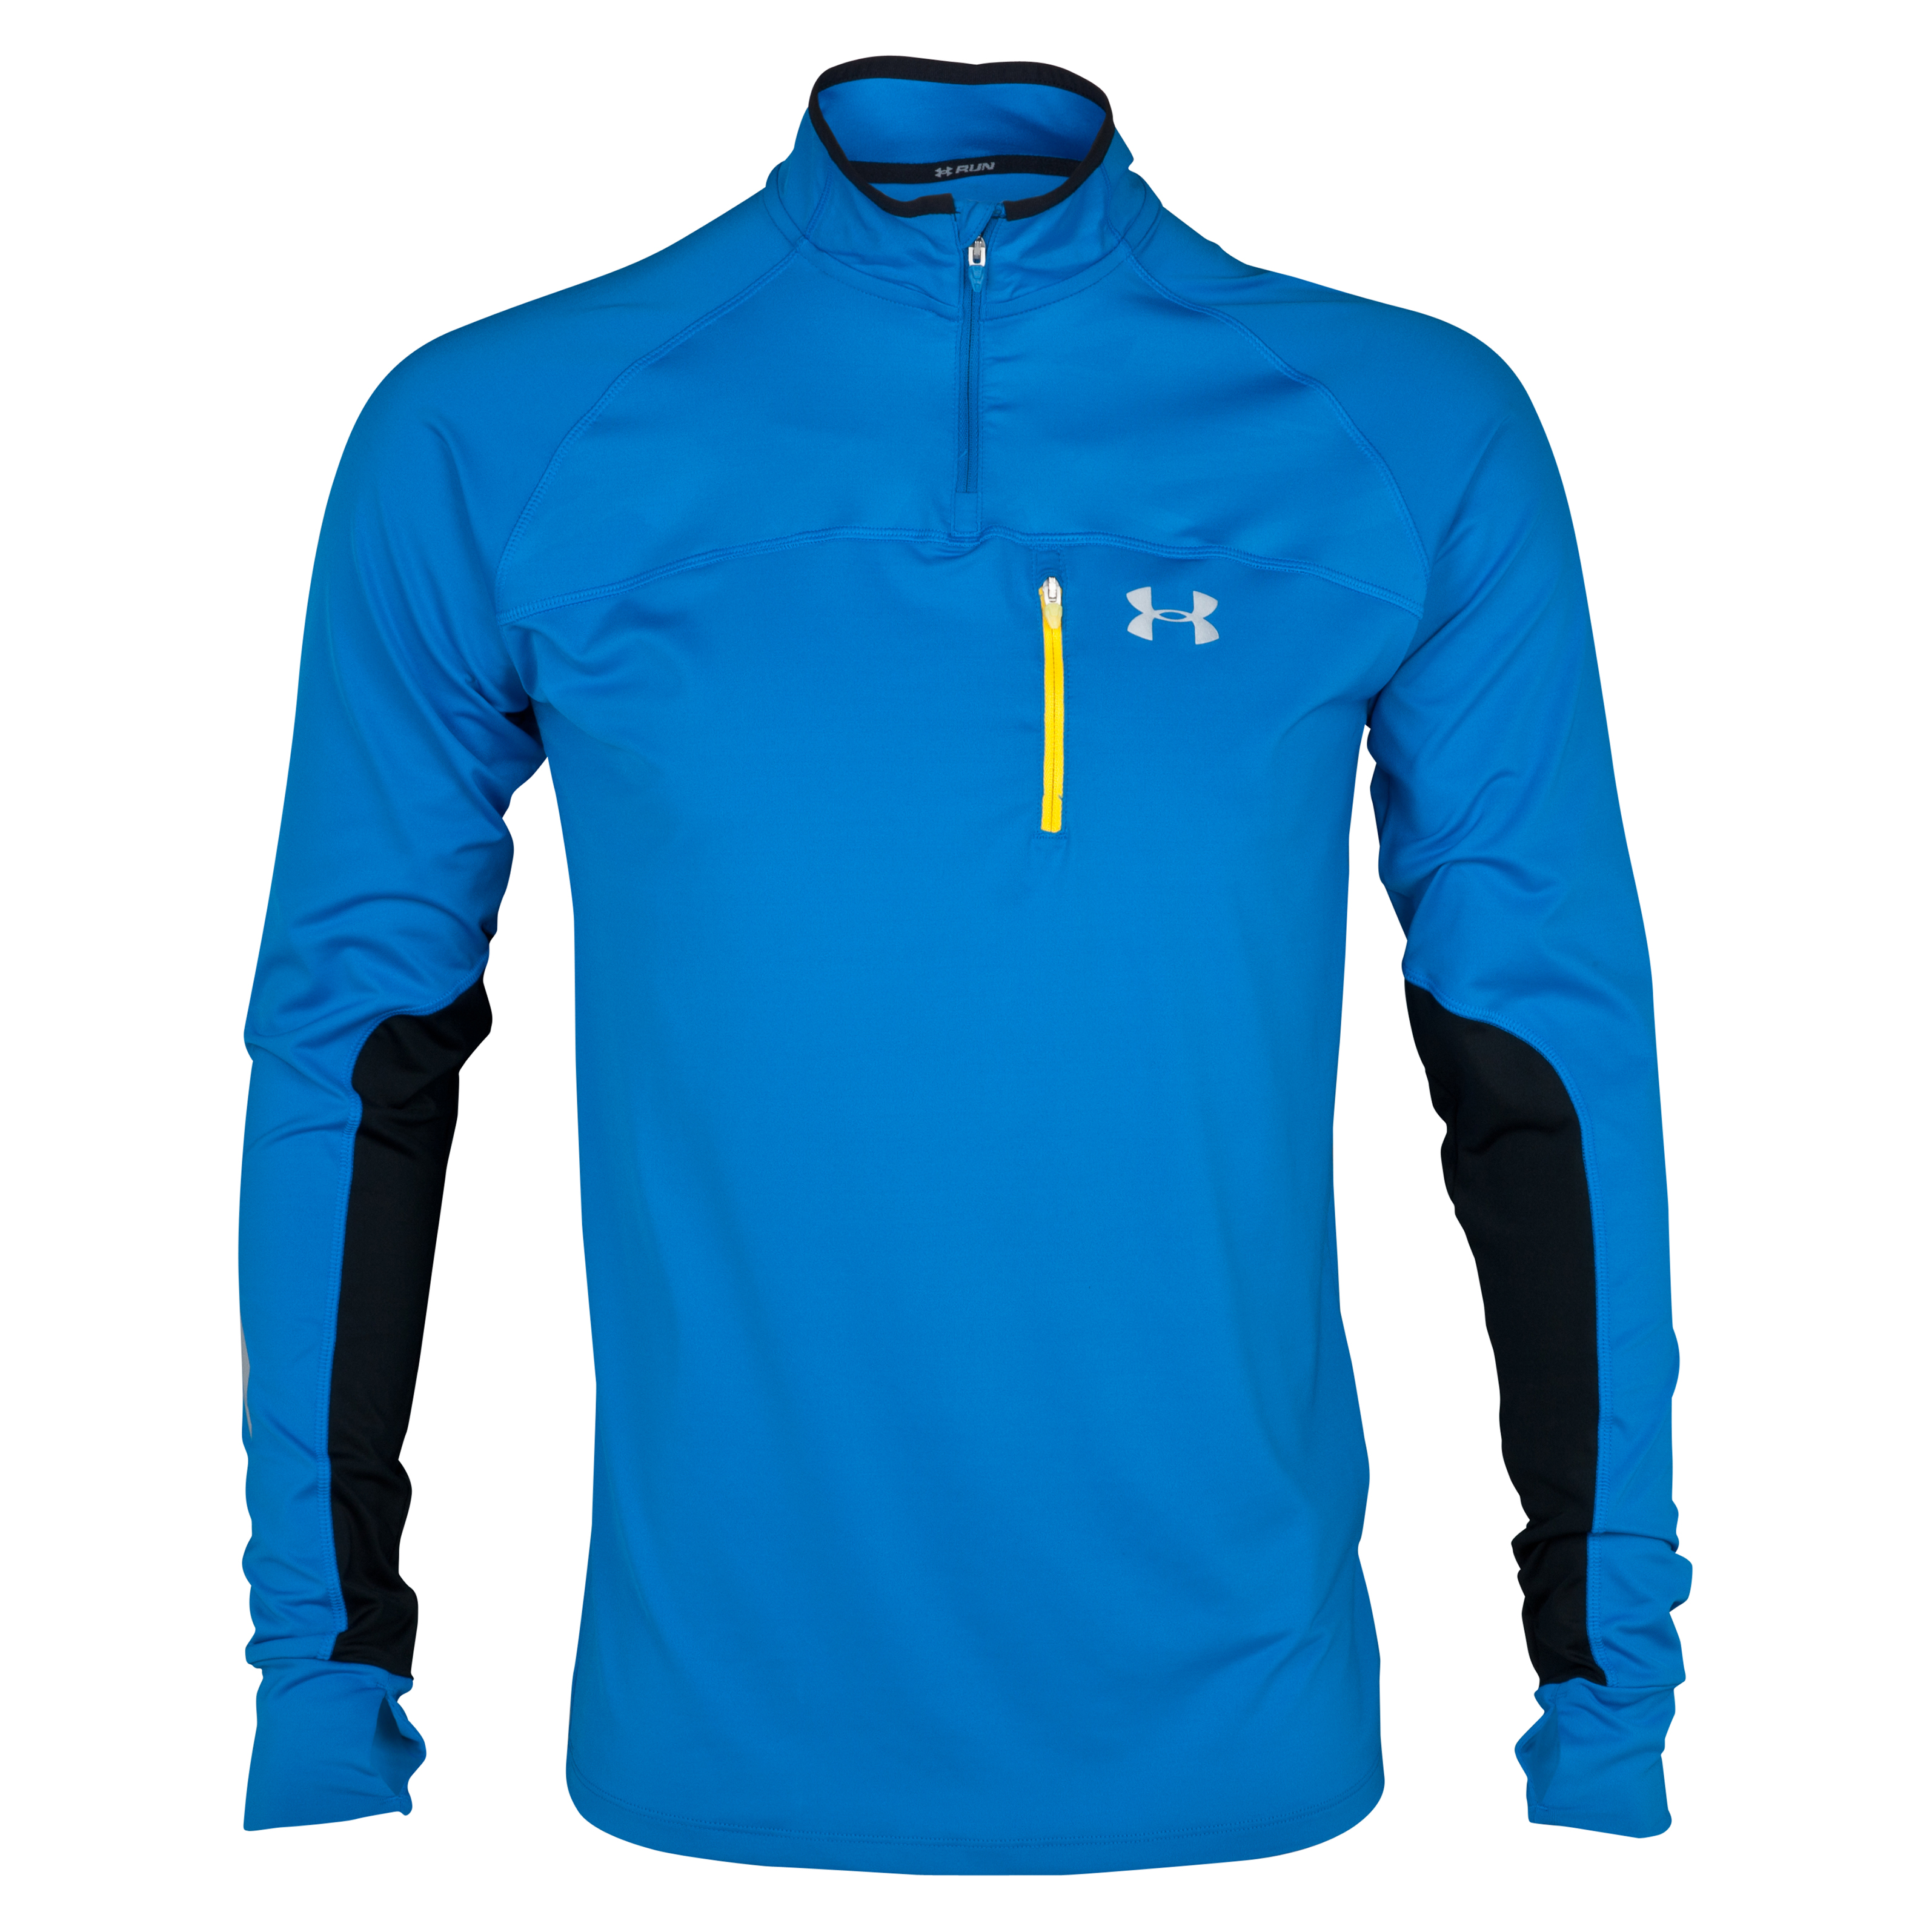 Under Armour - Imminent Run 1/4 Zip Top - Snorkel Blue/Black